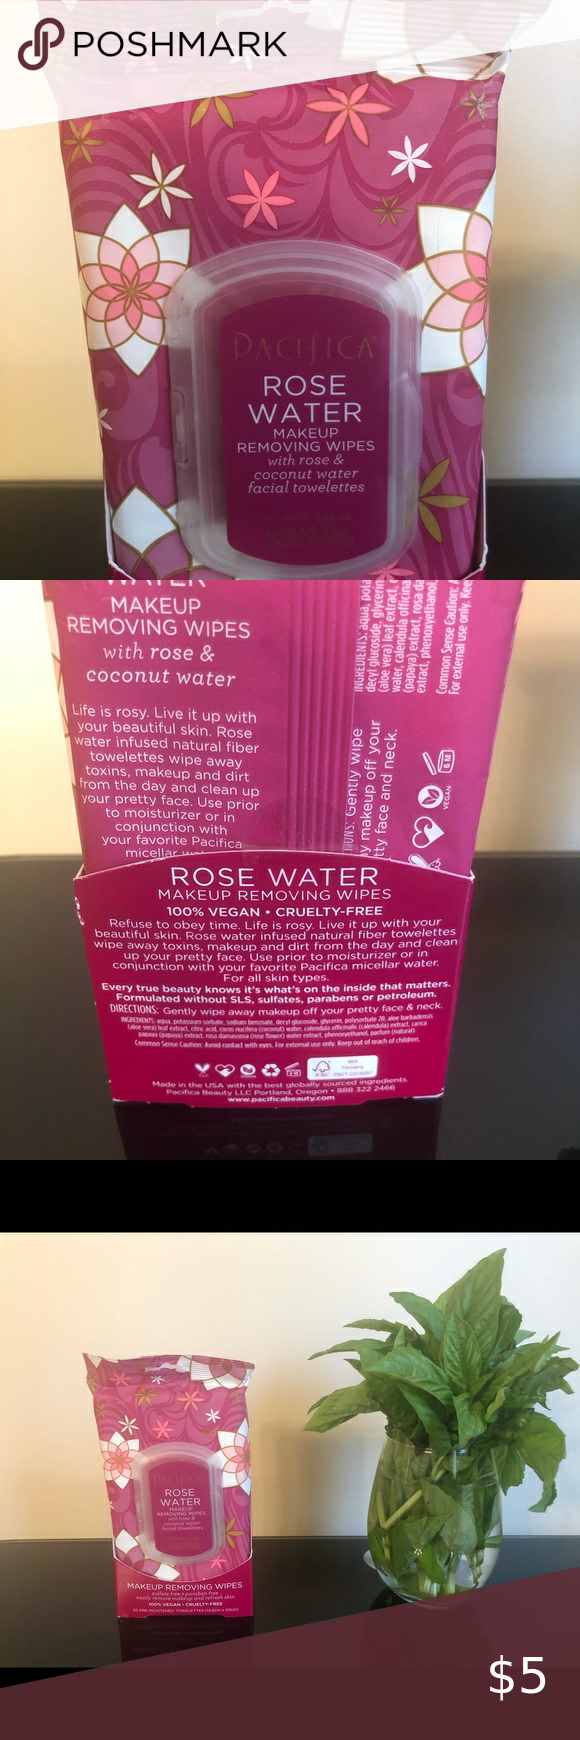 Pacifica Rose Makeup Removal Wipes in 2020 Makeup